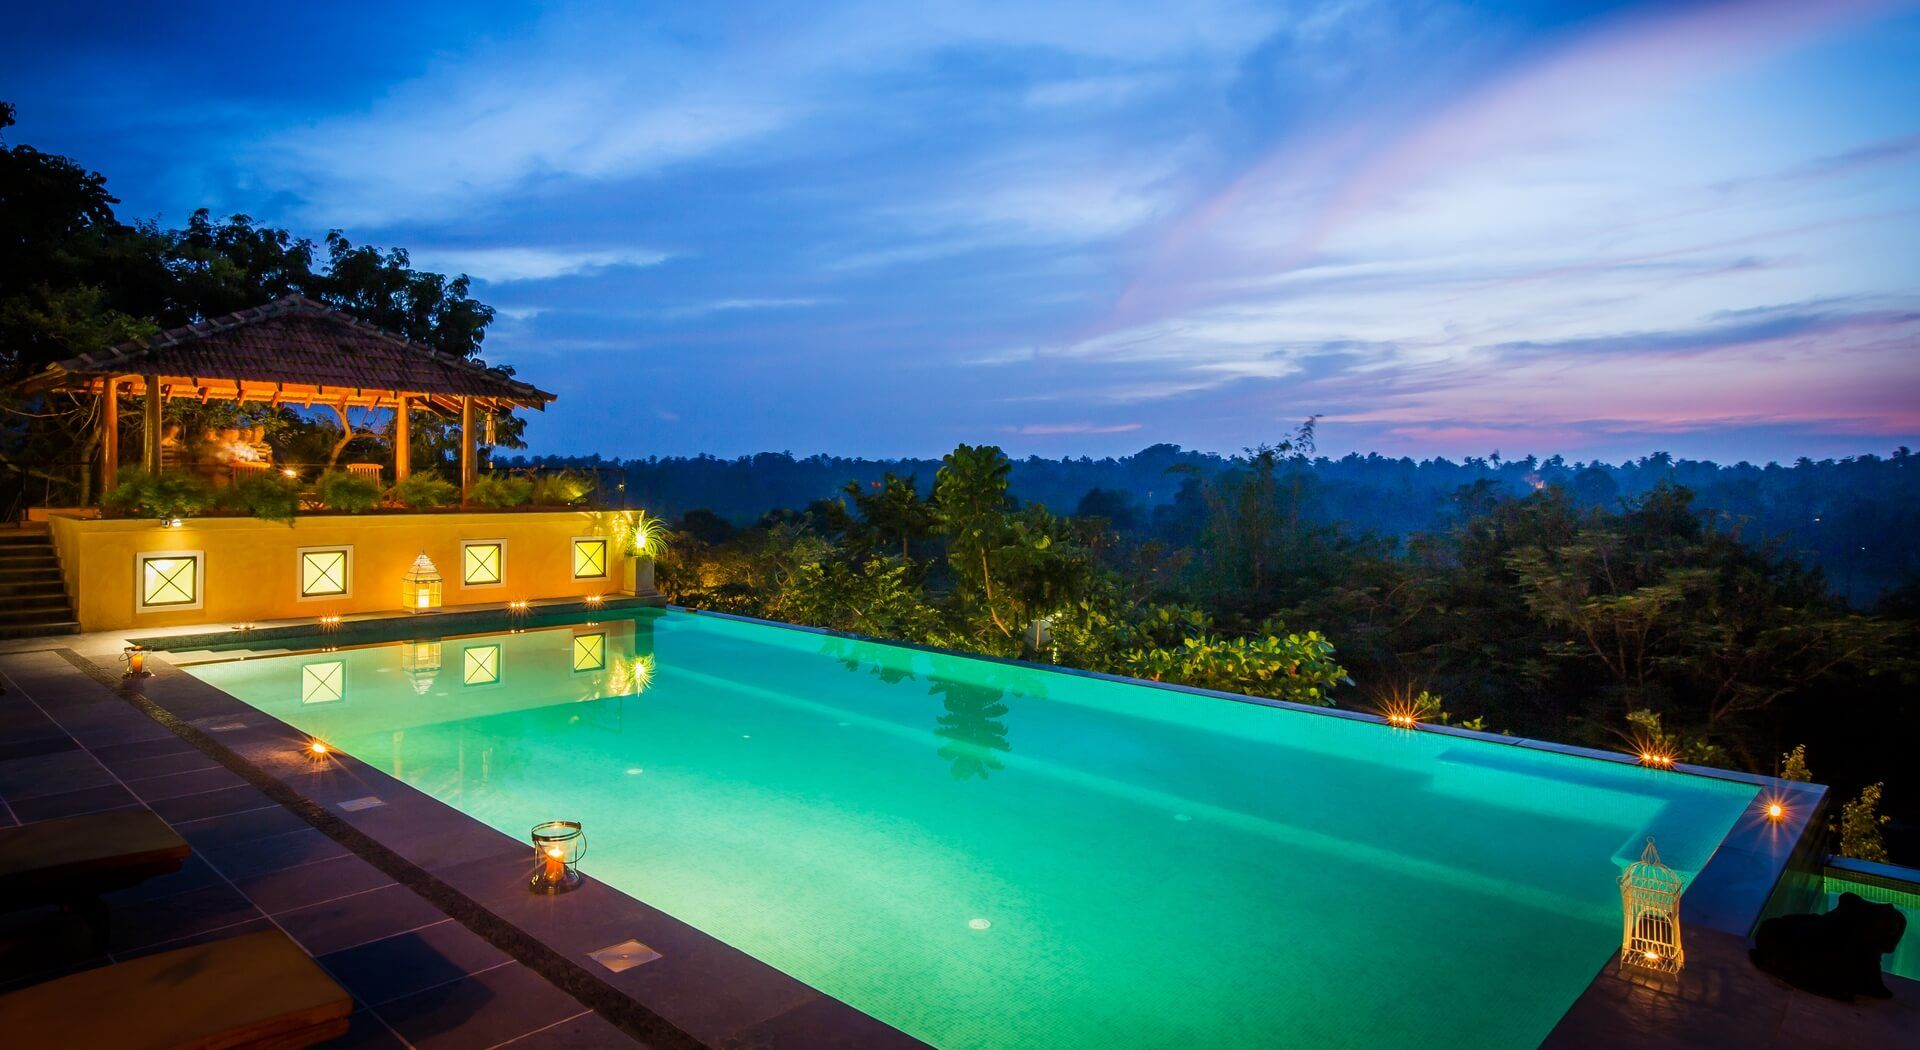 12 Luxurious Private Villas in Goa for the Group Luxury